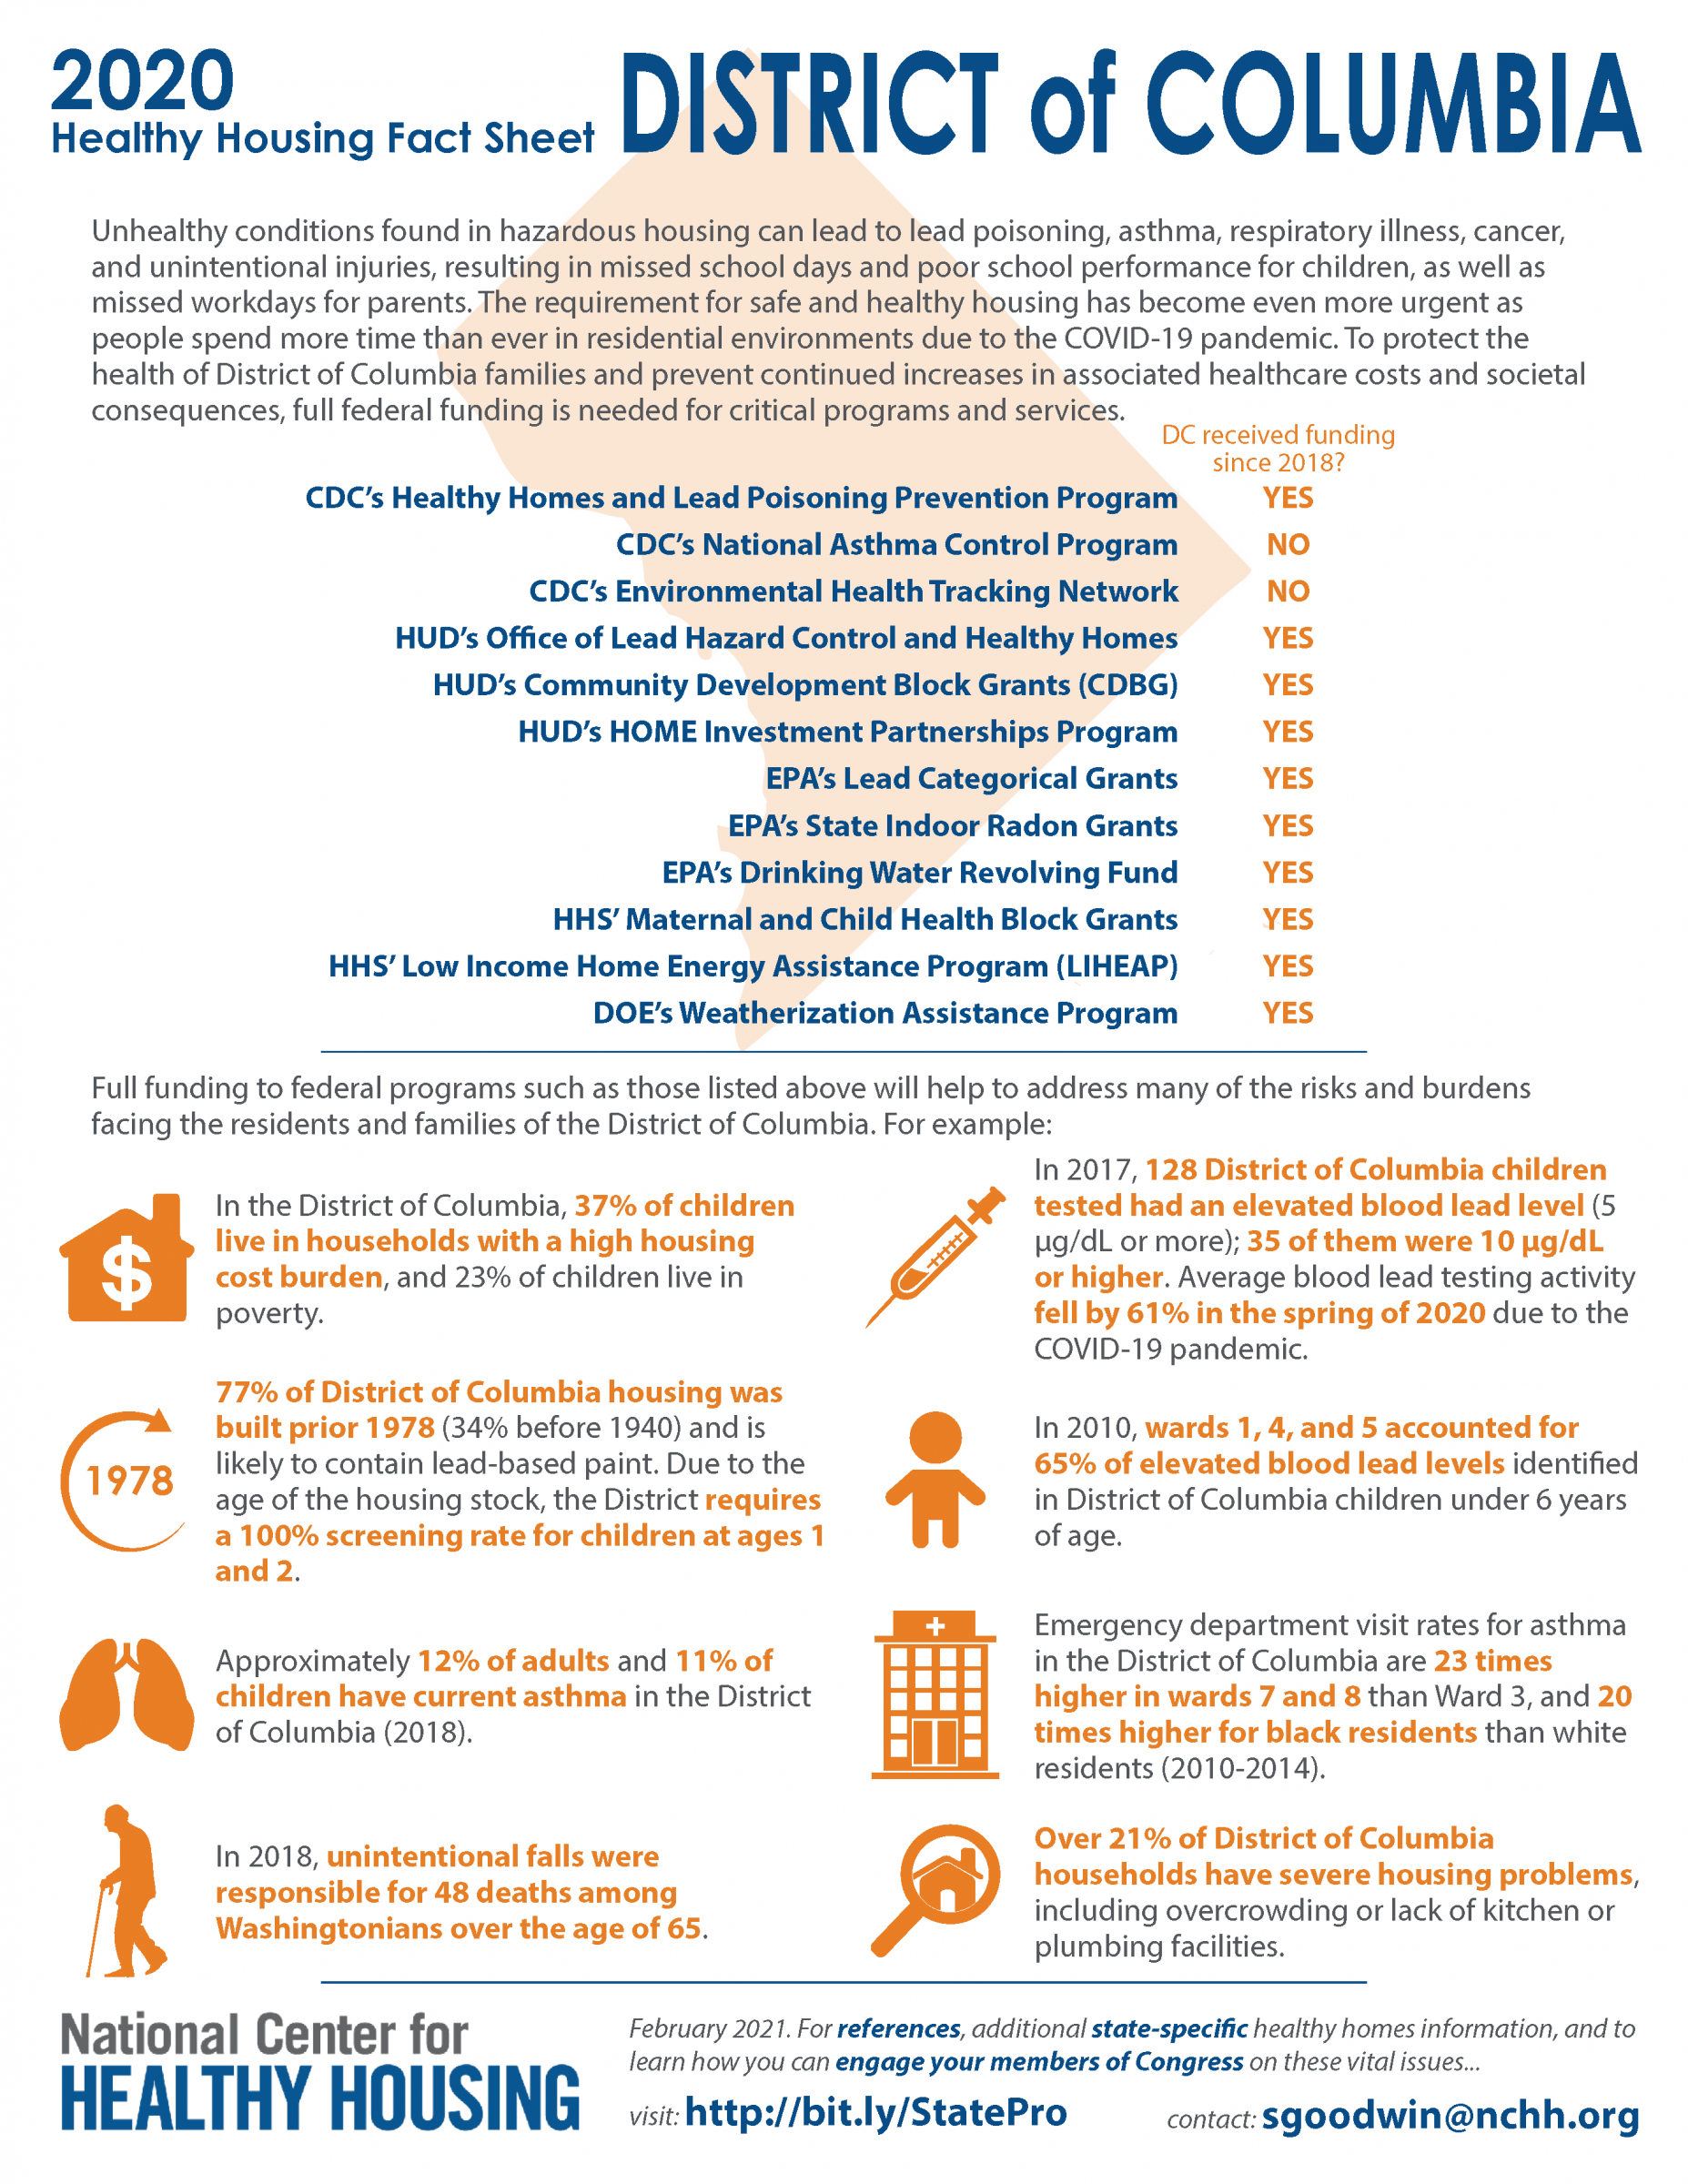 Healthy Housing Fact Sheet - District of Columbia 2020